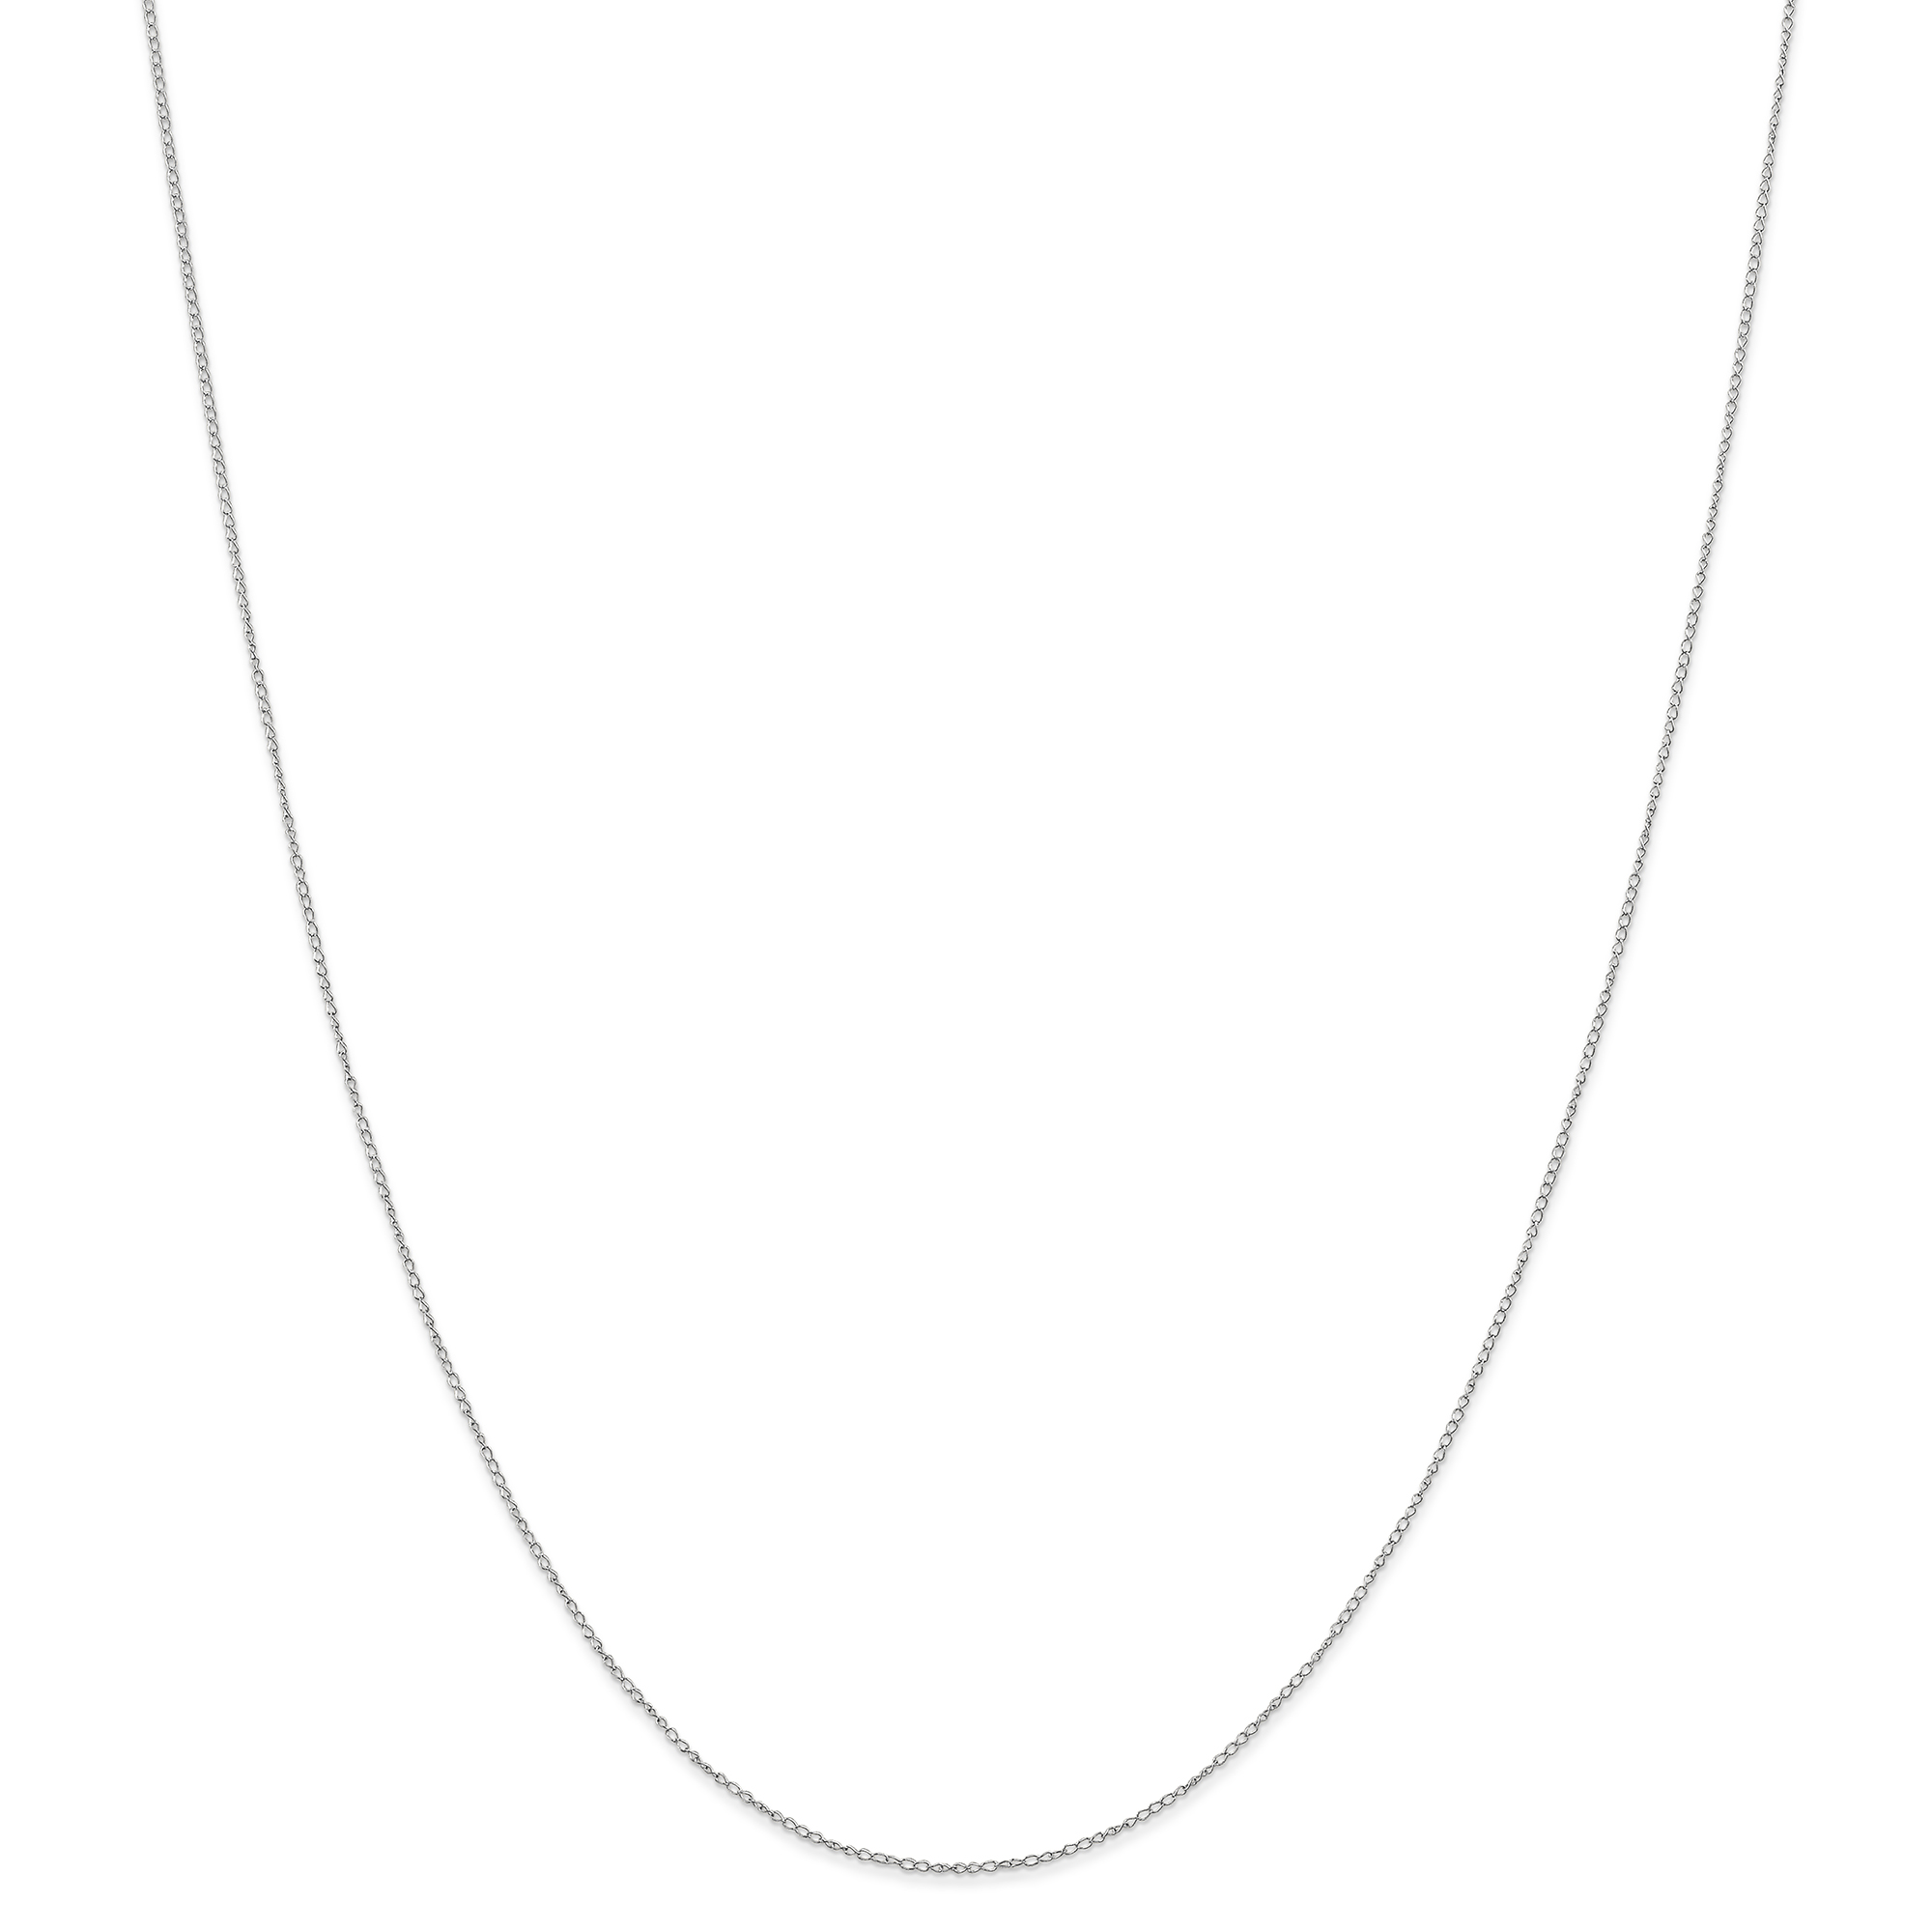 14k White Gold Carded Link Curb Chain Necklace 20 Inch Pendant Charm Fine Jewelry Gifts For Women For Her - image 6 of 6